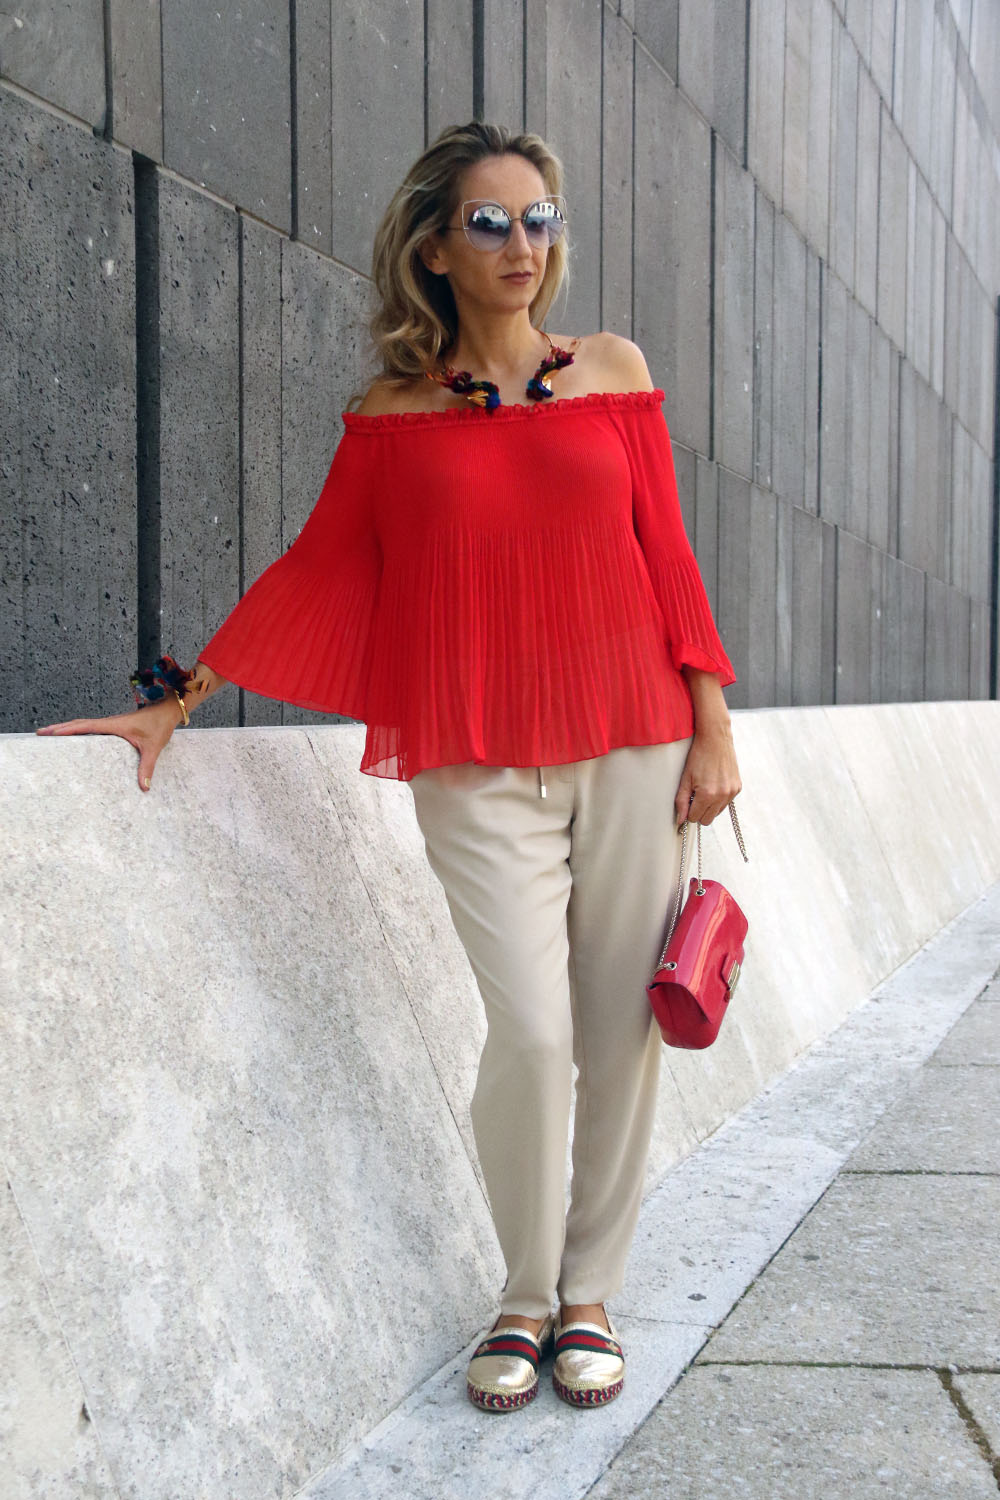 colourclub-modeblog-outfit-off-the-shoulder-top-gucci-shoes-furla-bag-thai-silk-juwelery-ornaments-lor14